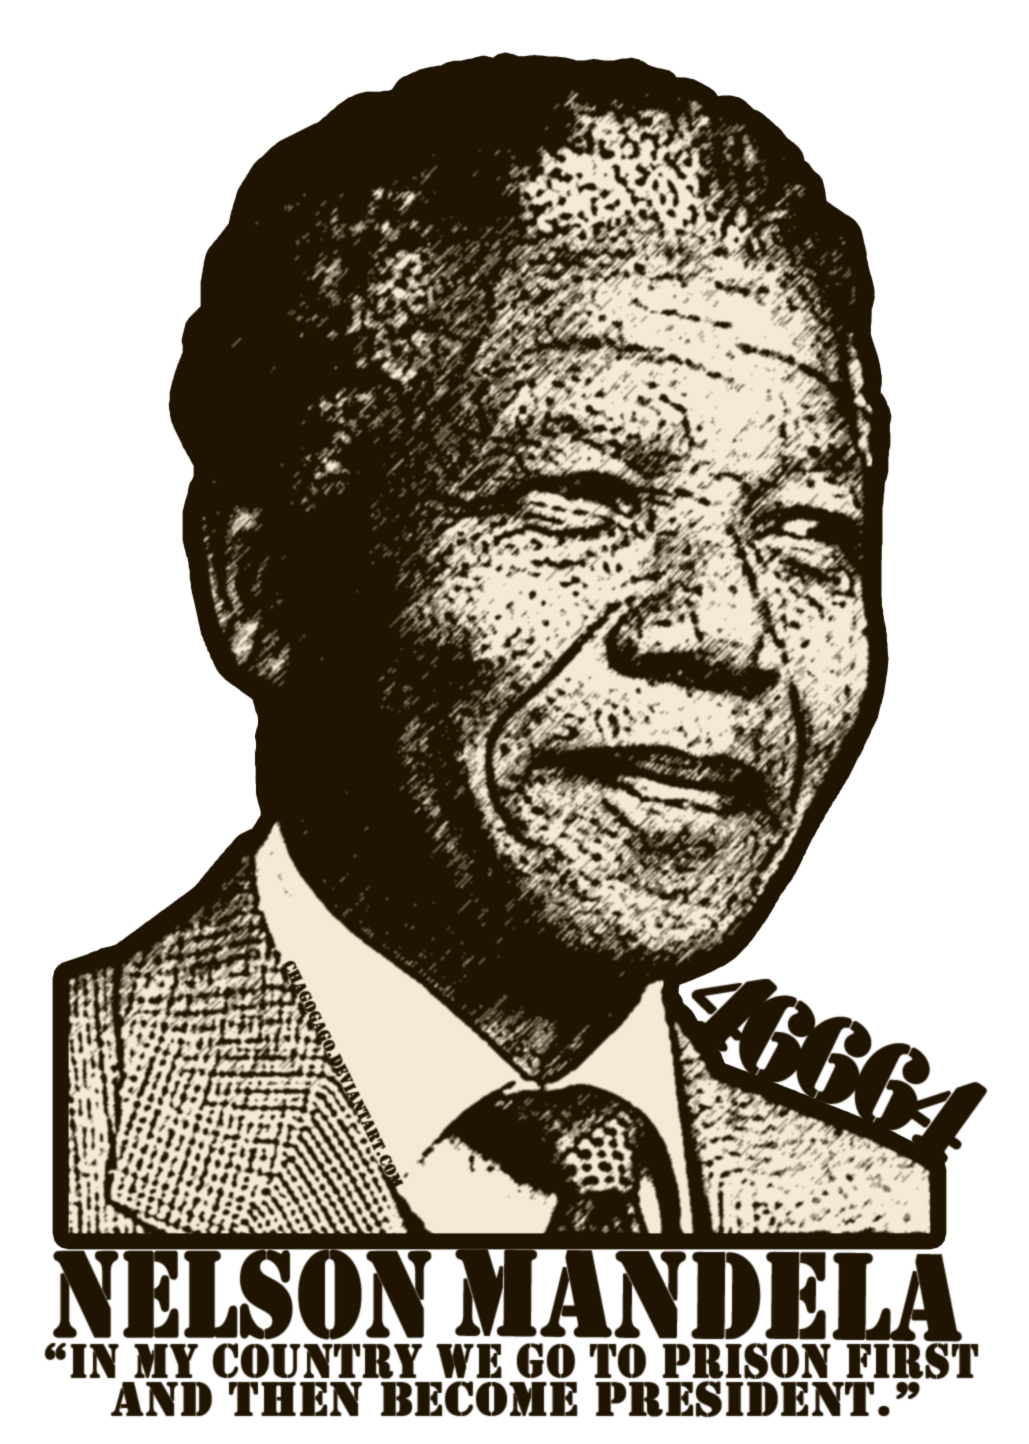 nelson mandela hero Nelson mandela was without doubt a hero during the years of 1948 south african ruling government introduced a law that cruelly and forcibly separated different racial groups in sa.